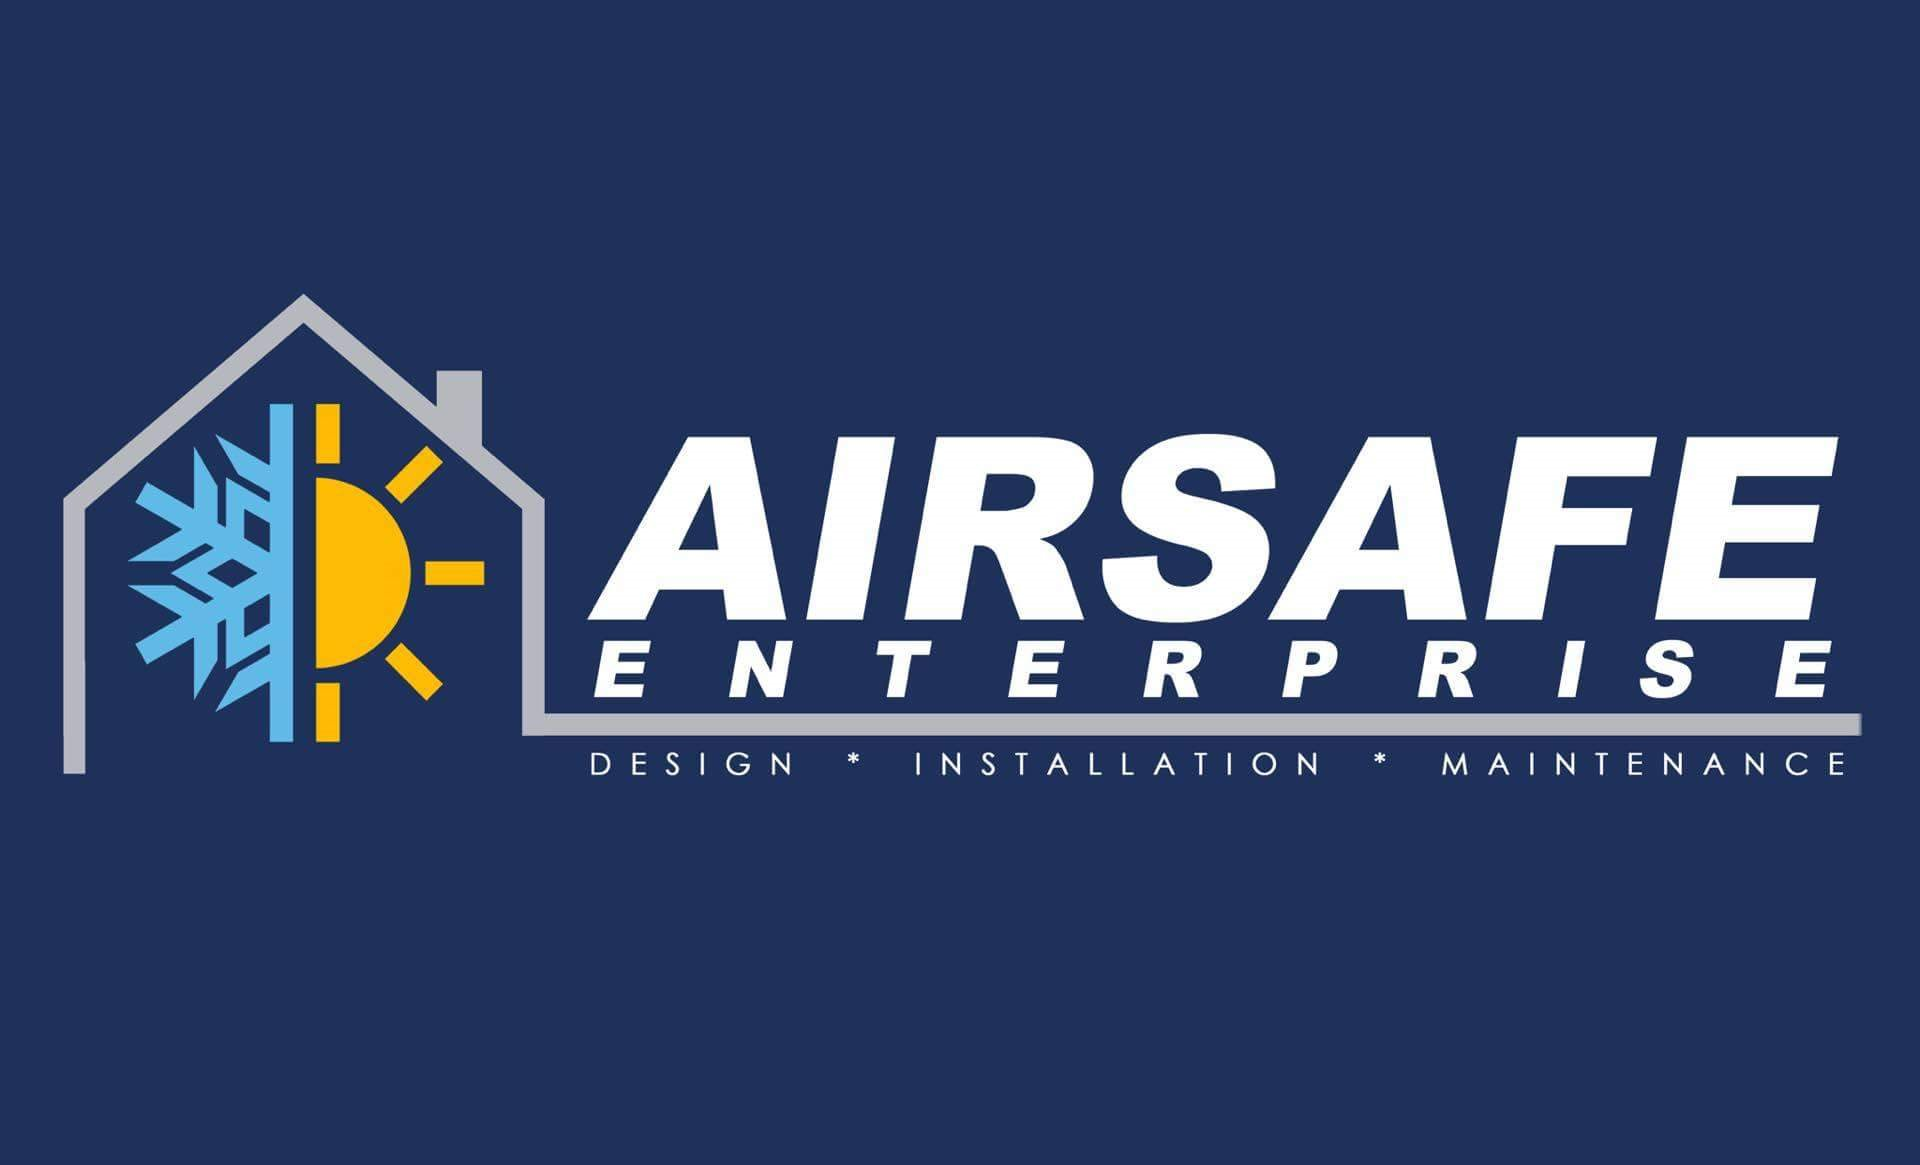 Airsafe Enterprise